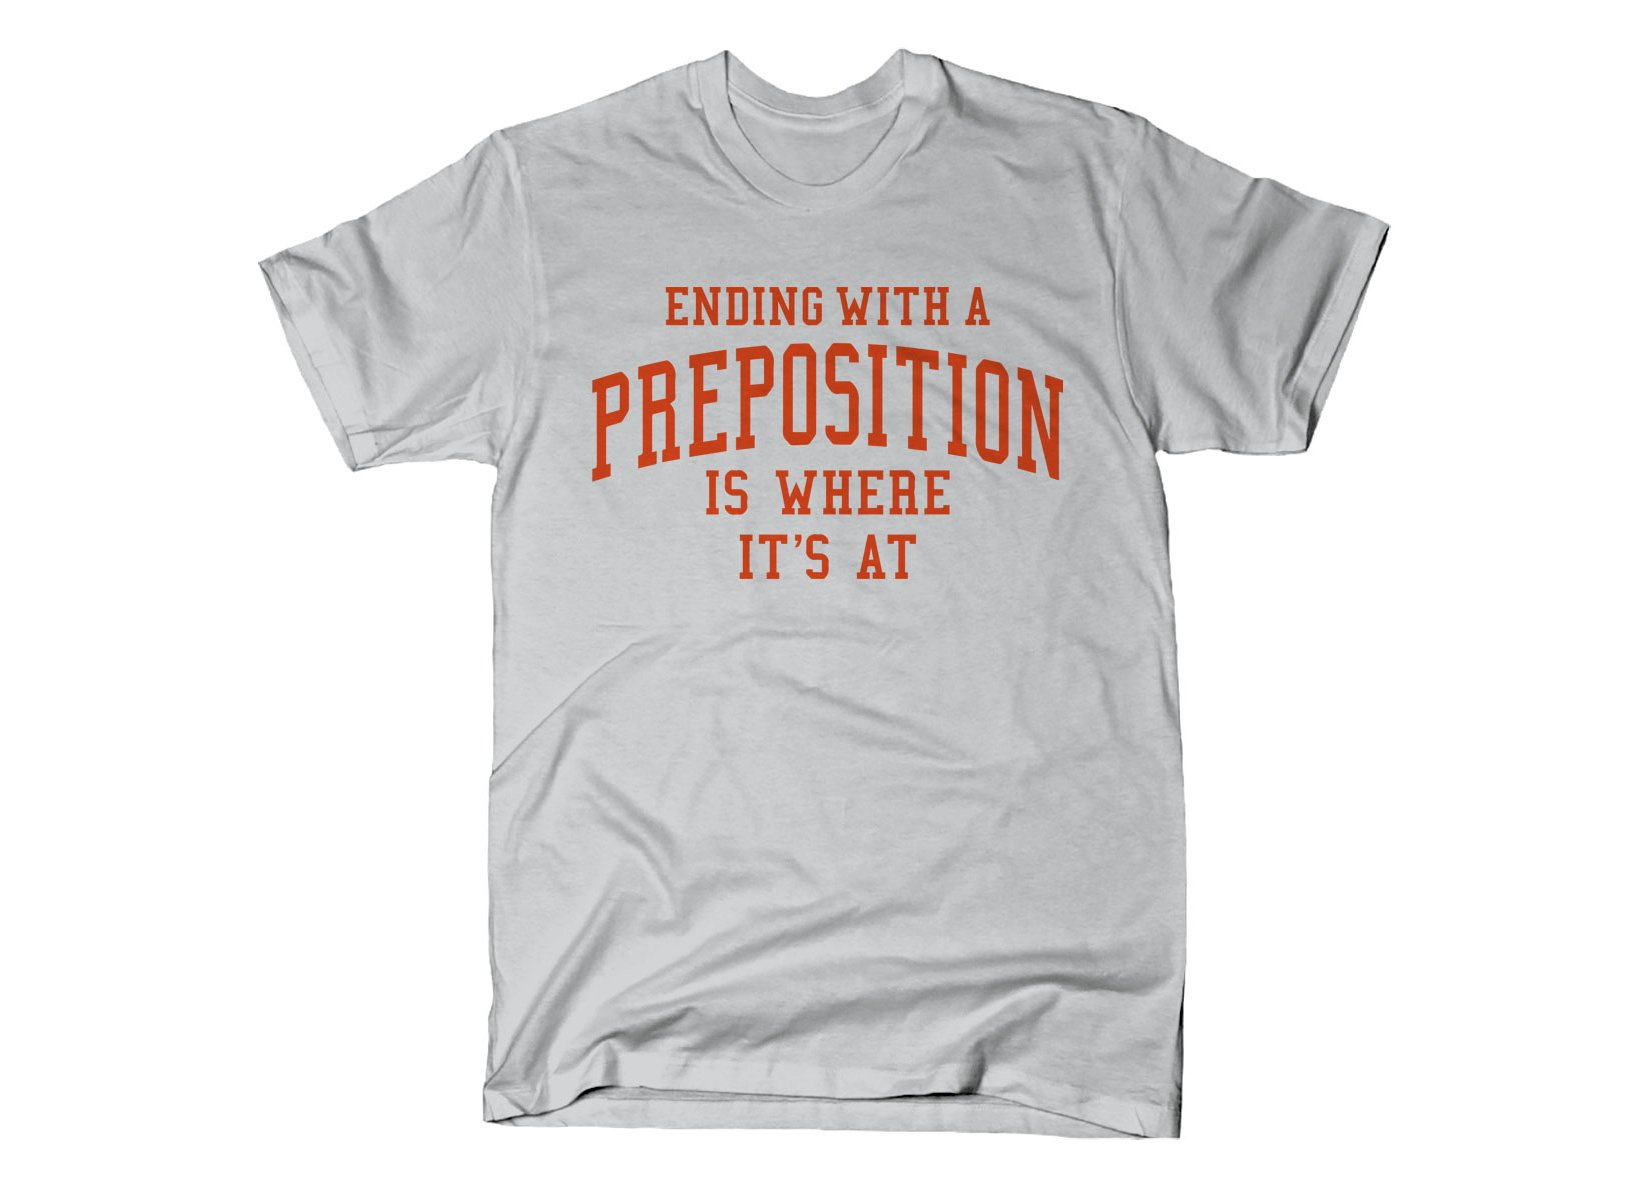 Ending With A Preposition Is Where It's At on Mens T-Shirt